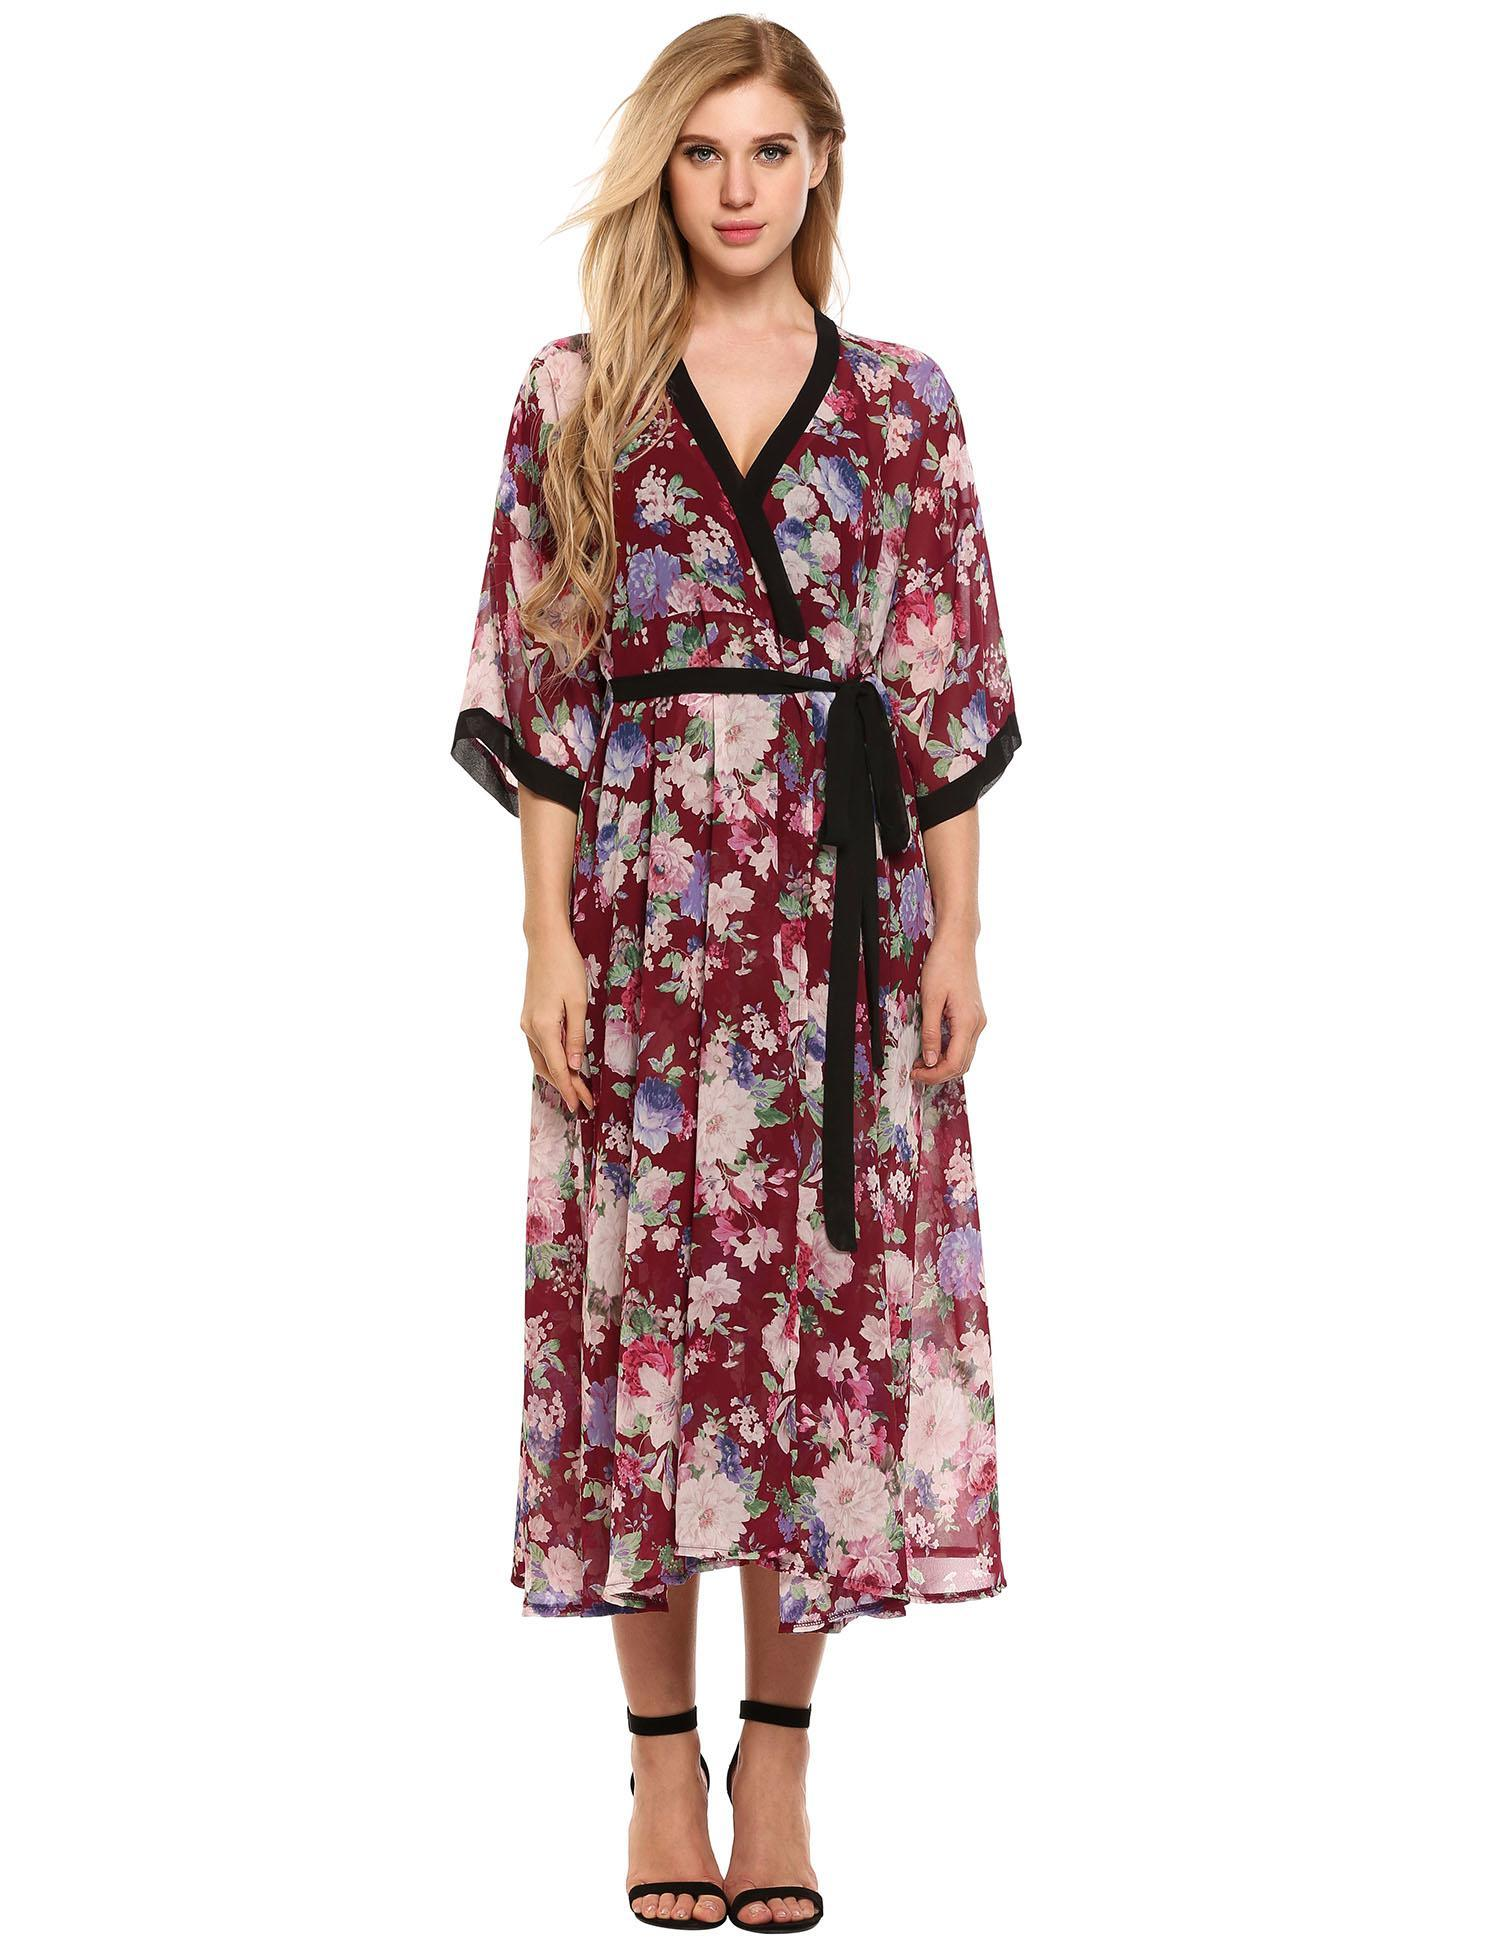 66d347a8037bd 2019 The Newest! Women Loose V Neck 3/4 Sleeve Floral Maxi Chiffon ...